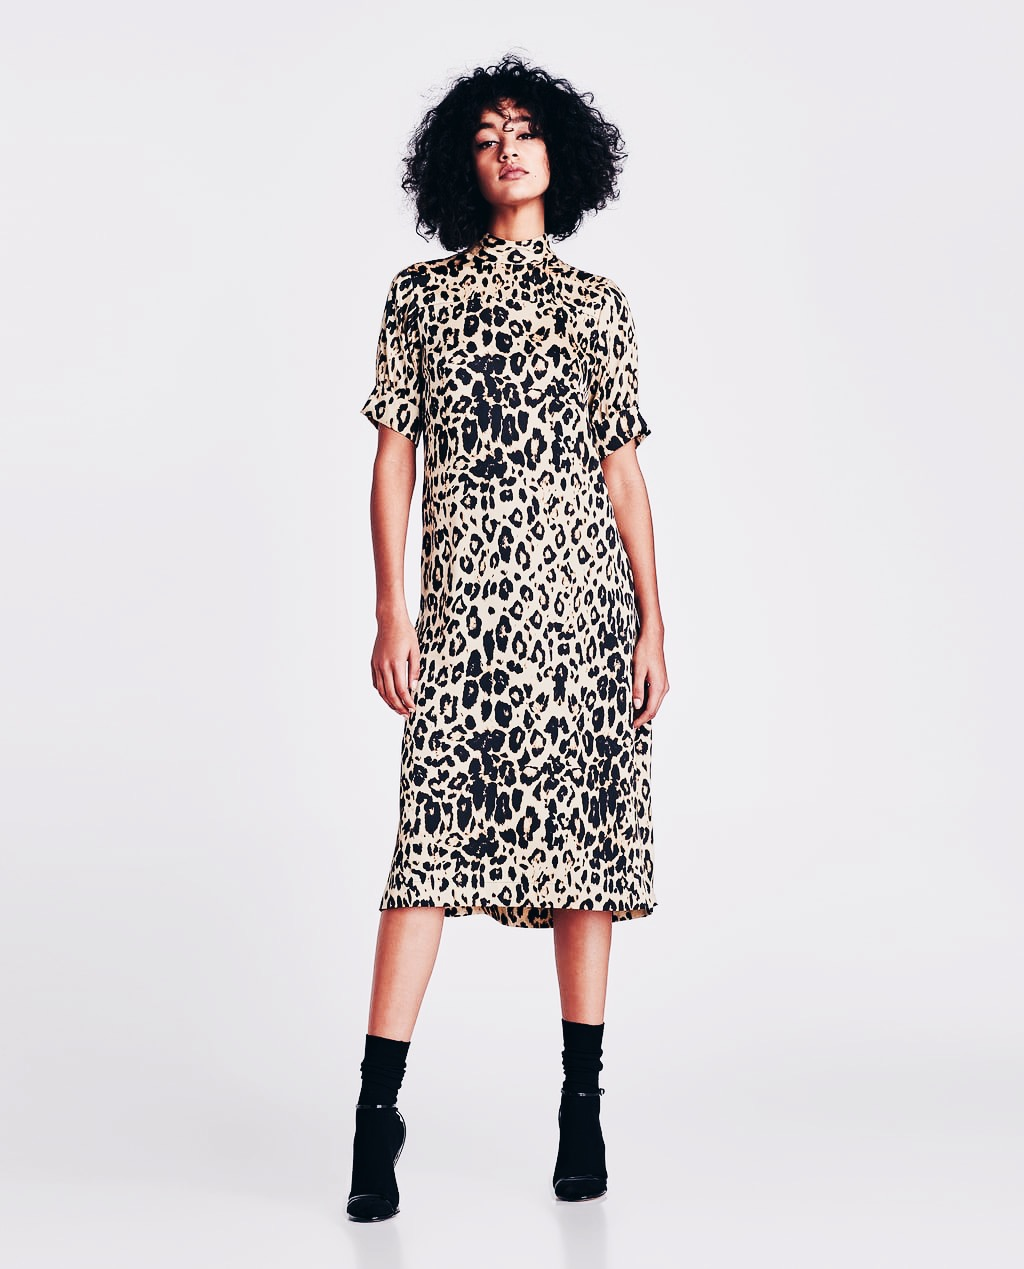 Leopard Lovers Christmas Gifts | The Lady-like Leopard Blog